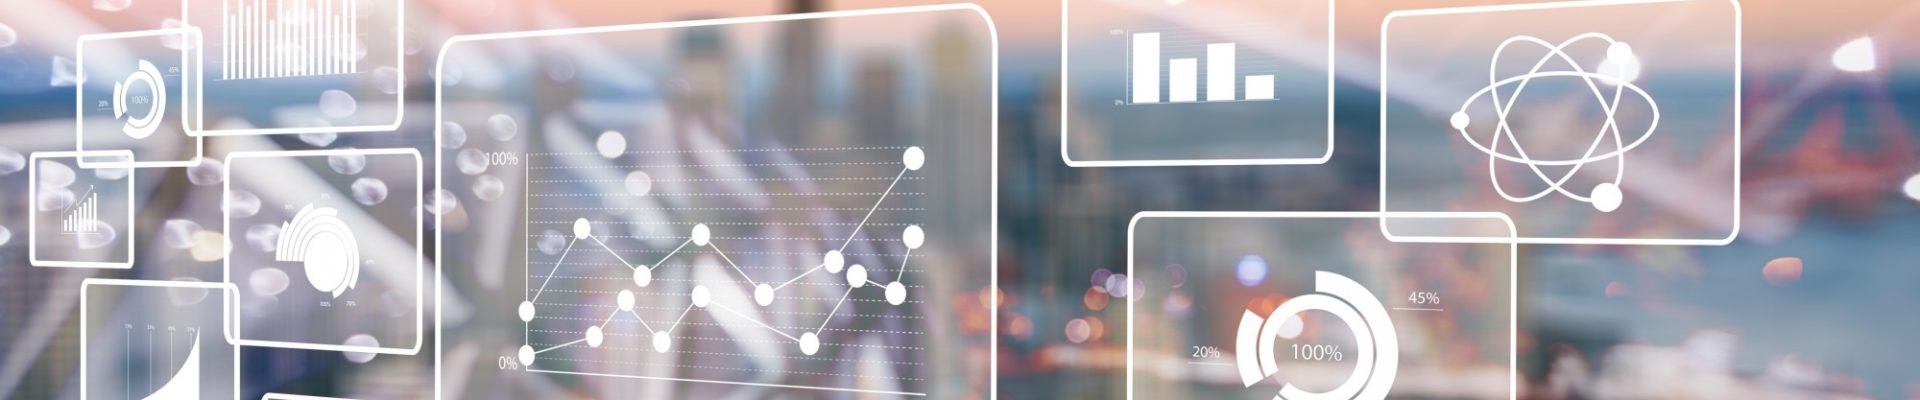 5 Big Data Problems to Watch out For